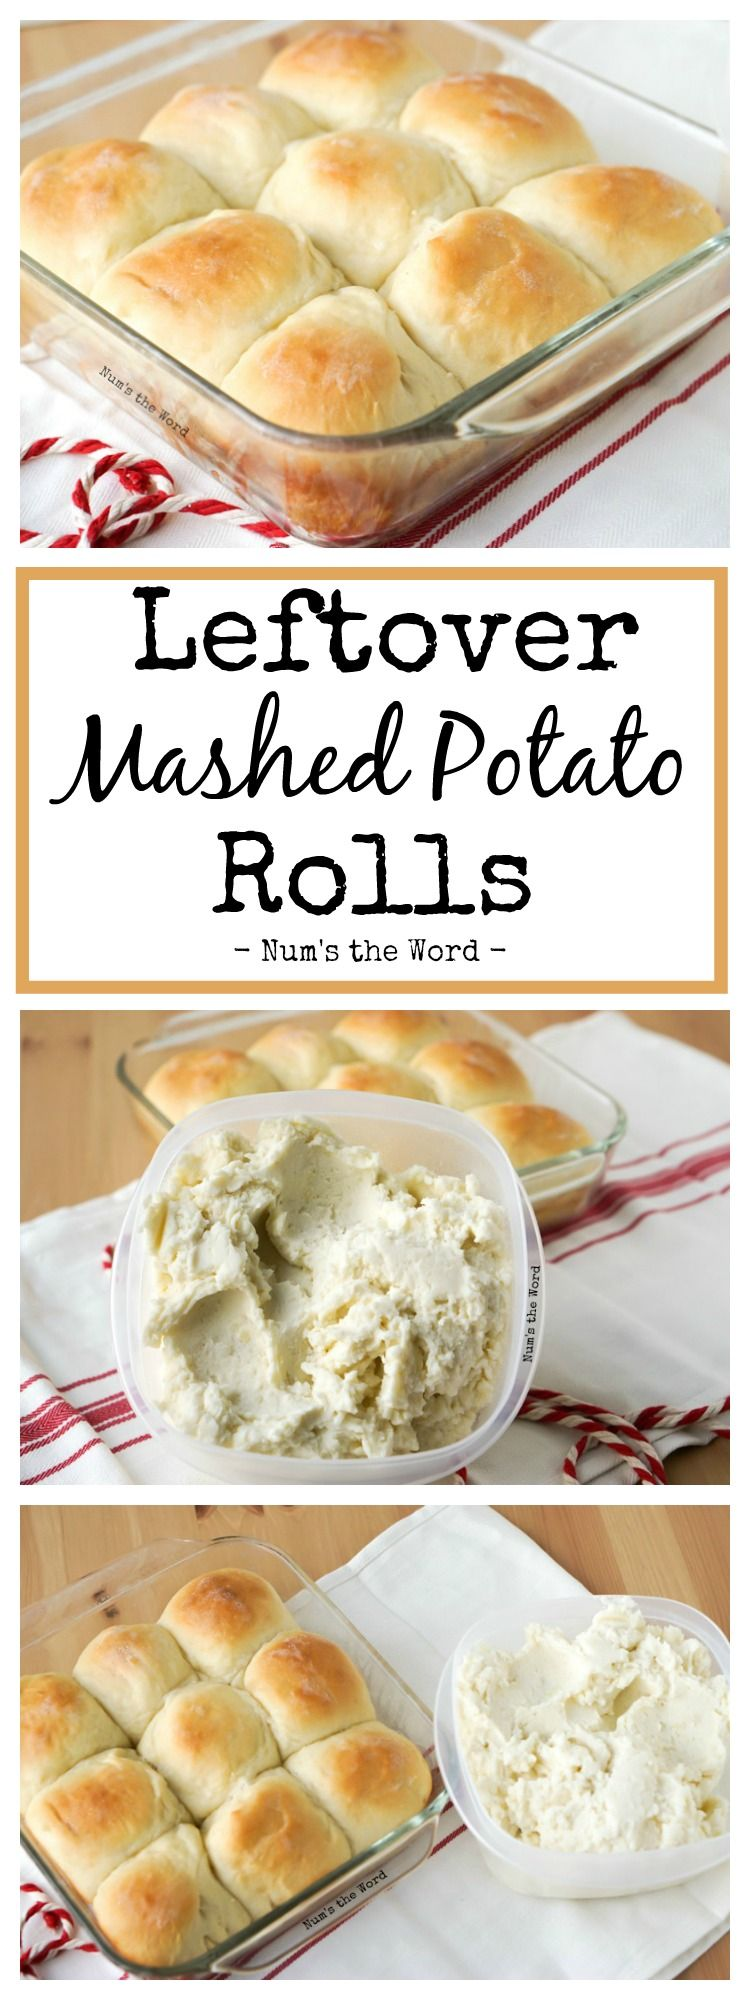 Leftover Mashed Potato Rolls Are A Sweet And Delicious Way To Use Up Any Flavor Of